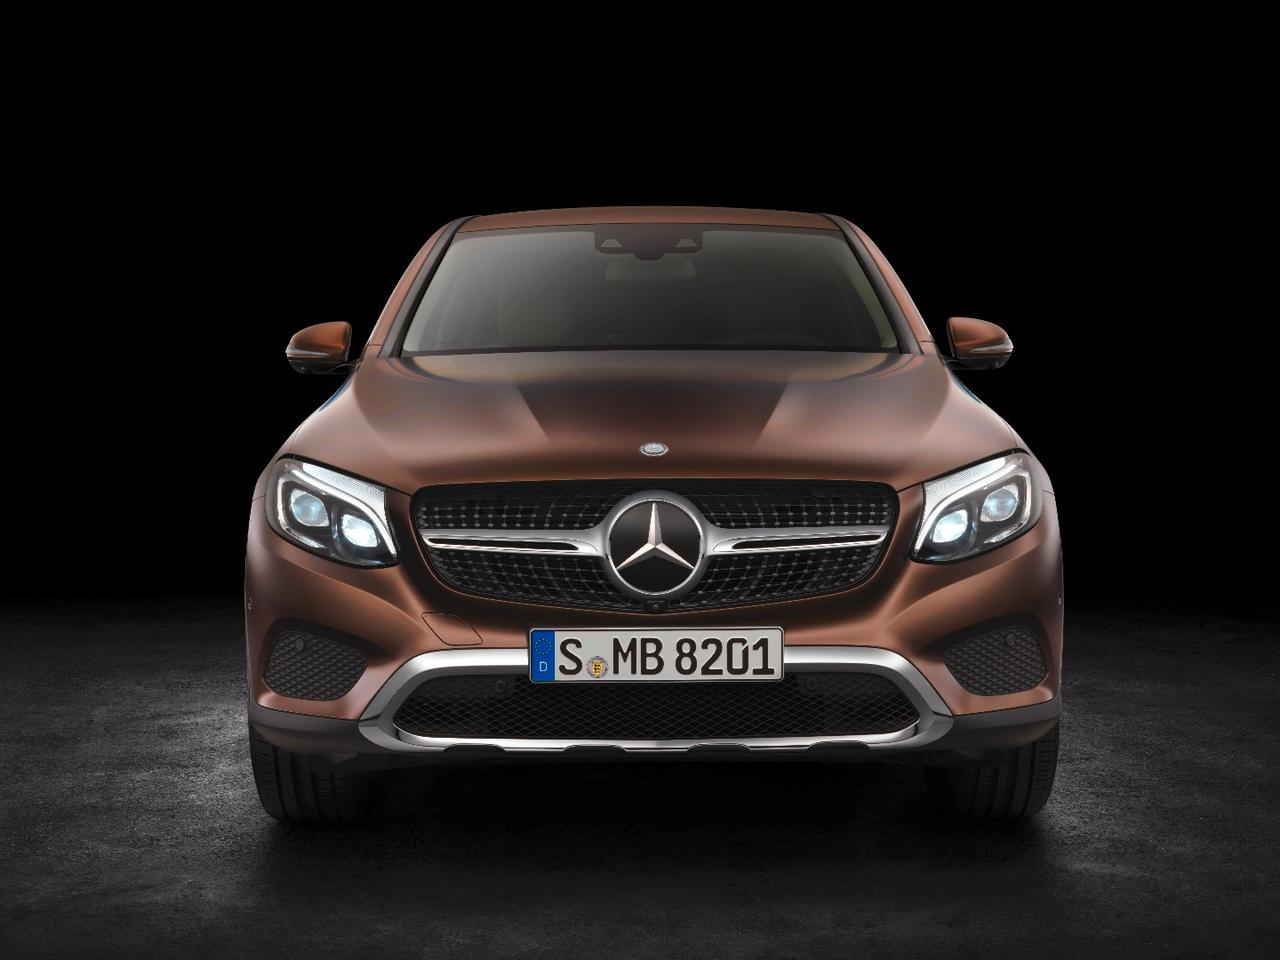 Mercedes has focused on style rather than practicality for its new GLC Coupe